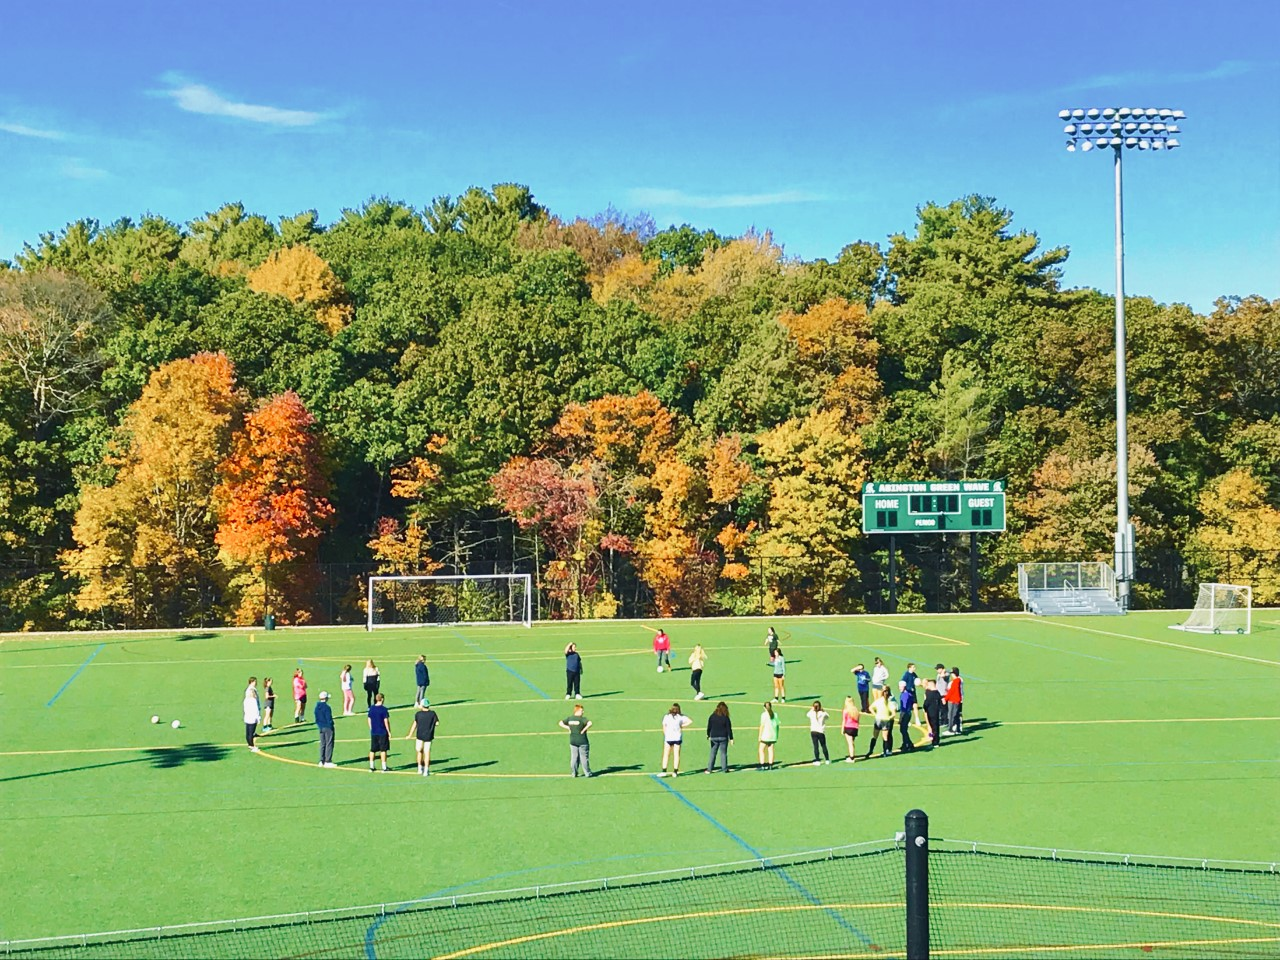 Students gather on the afternoon of Tuesday, October 15, 2019 on the field behind Abington High School.